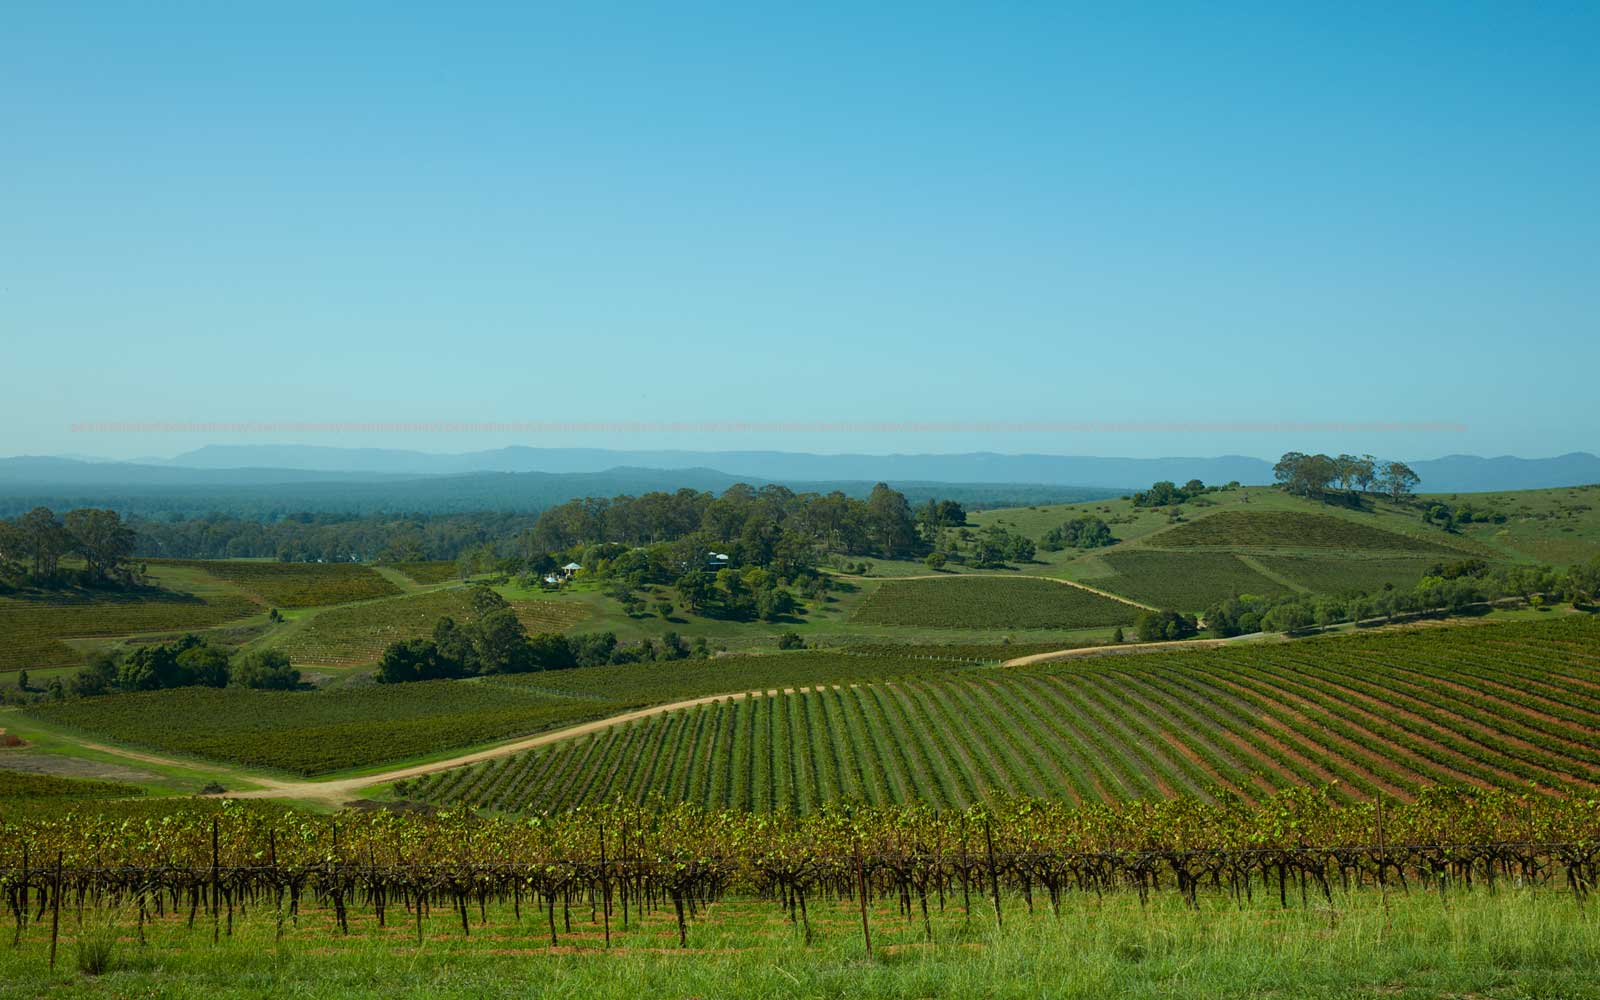 Australia's Oldest Wine Region Is One of Its Best-kept Secrets